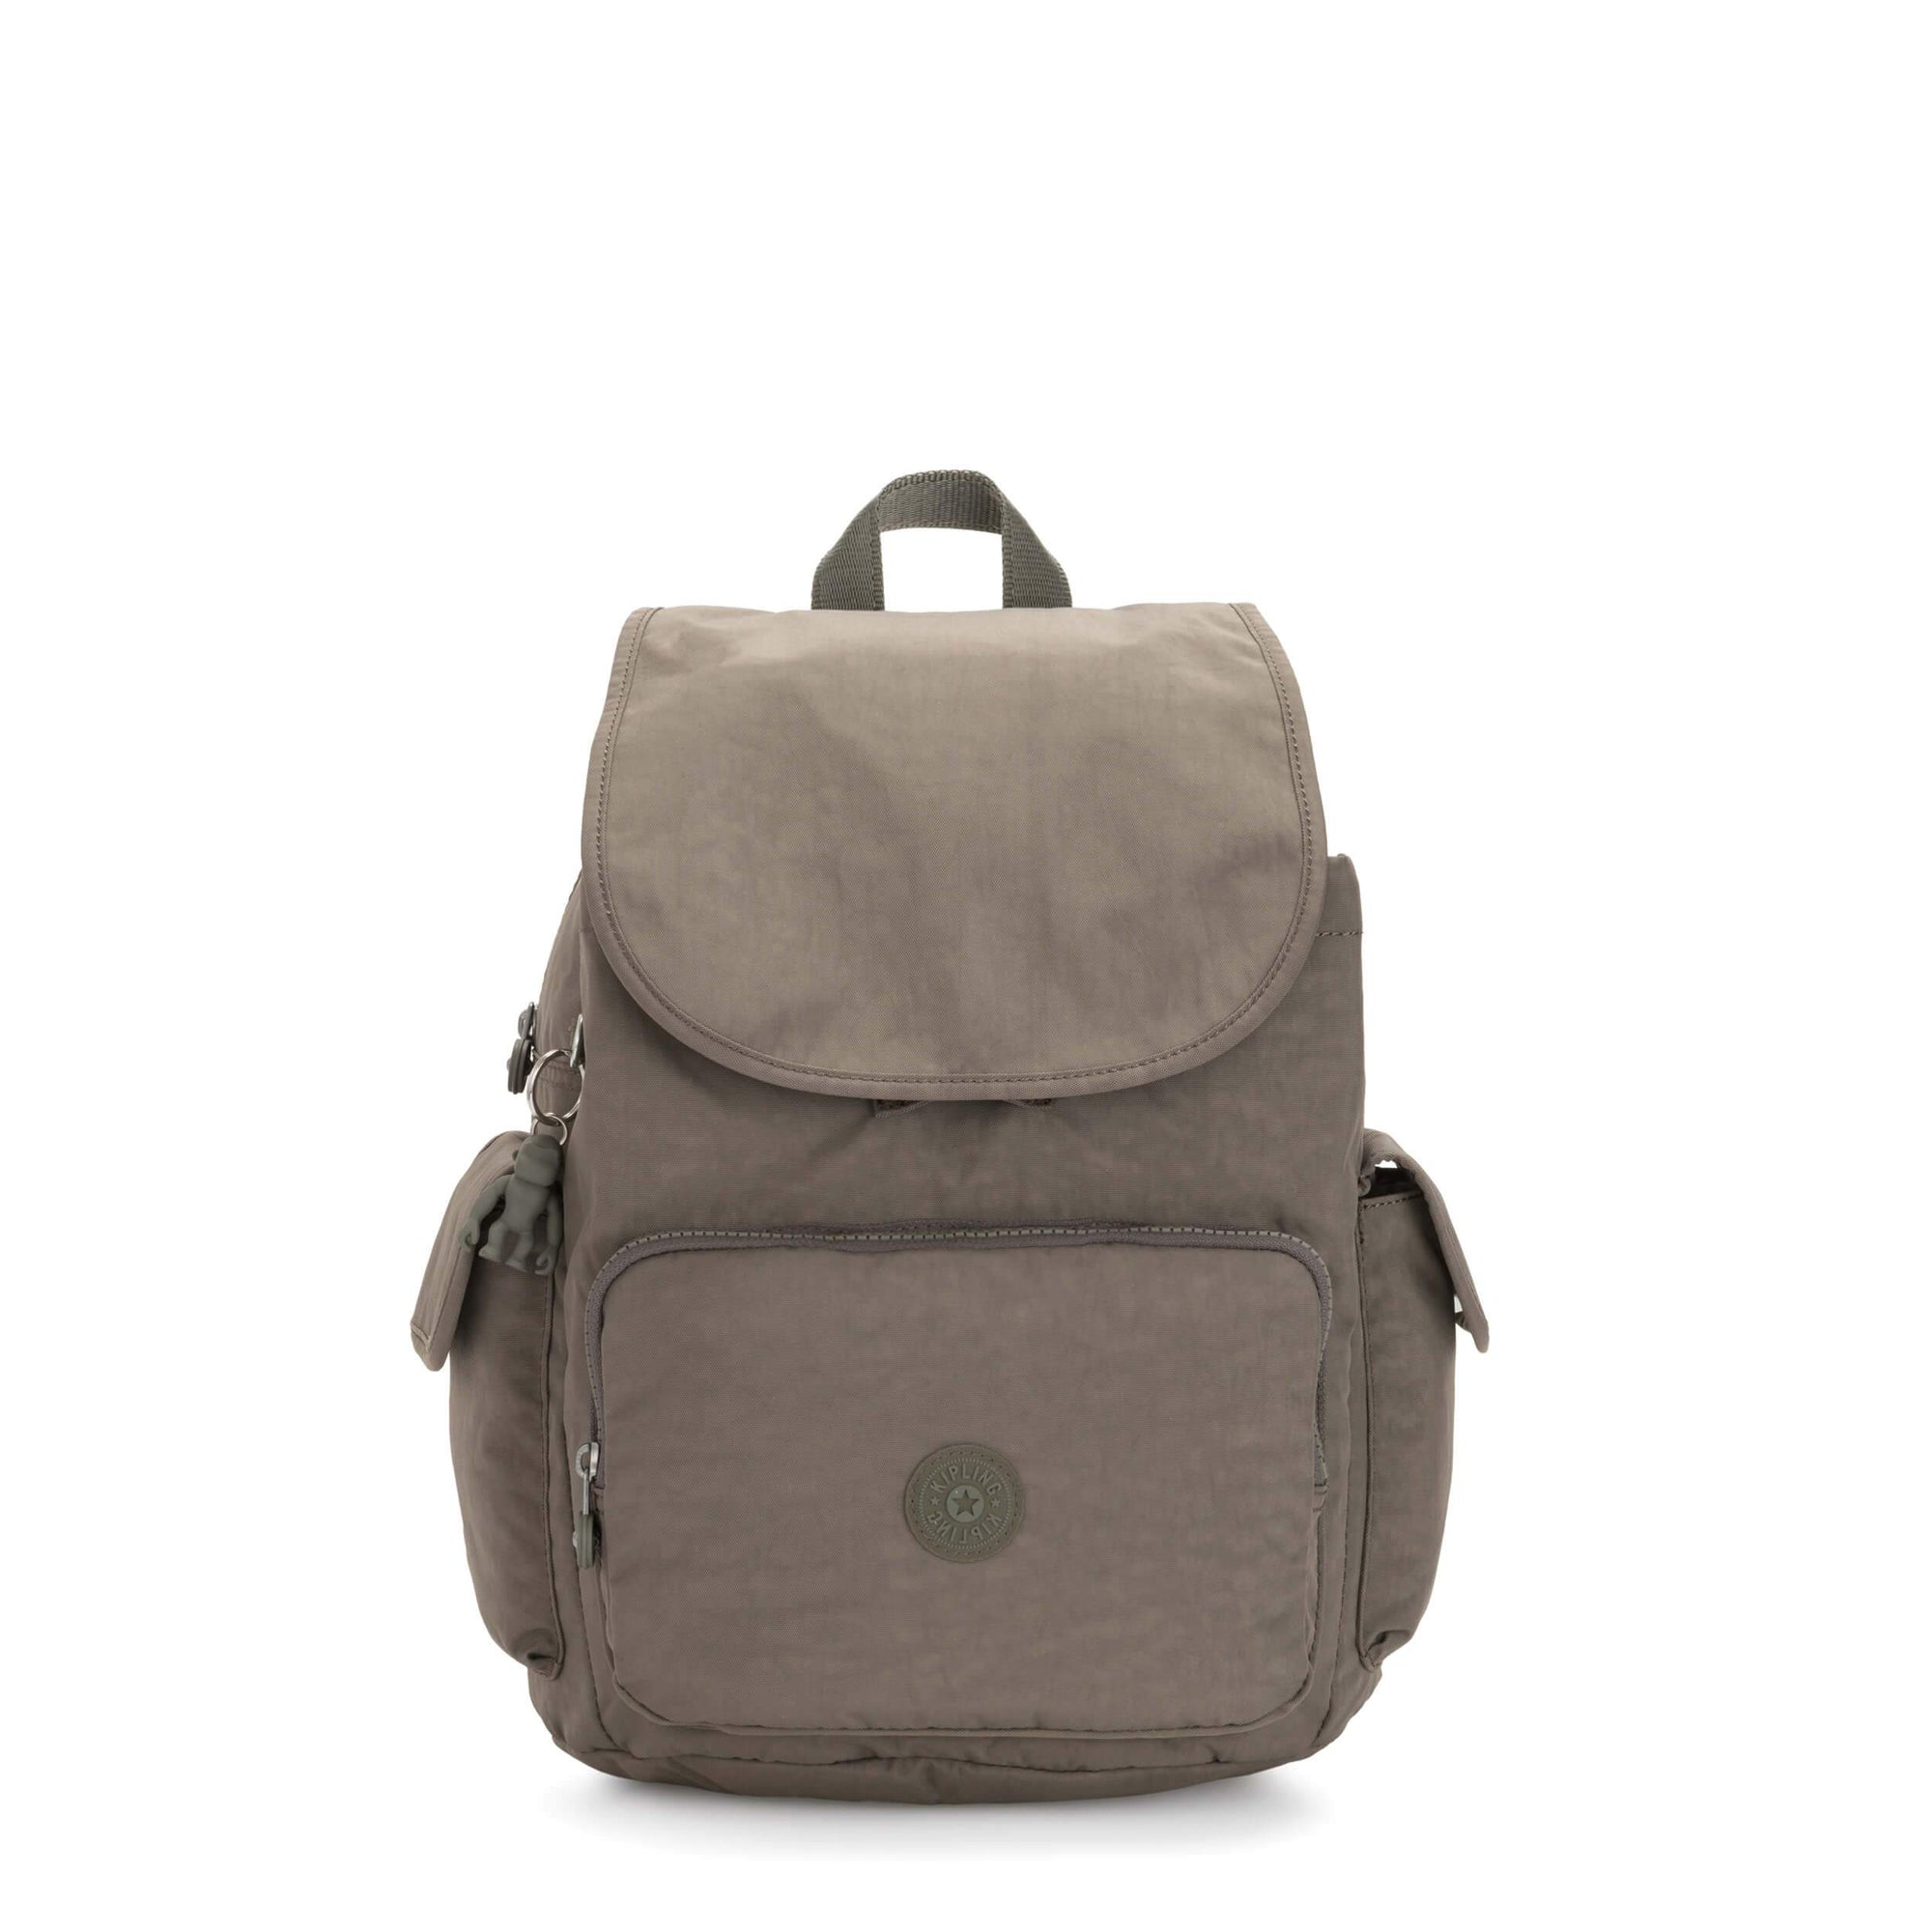 Backpack Kipling City Pack Seagrass